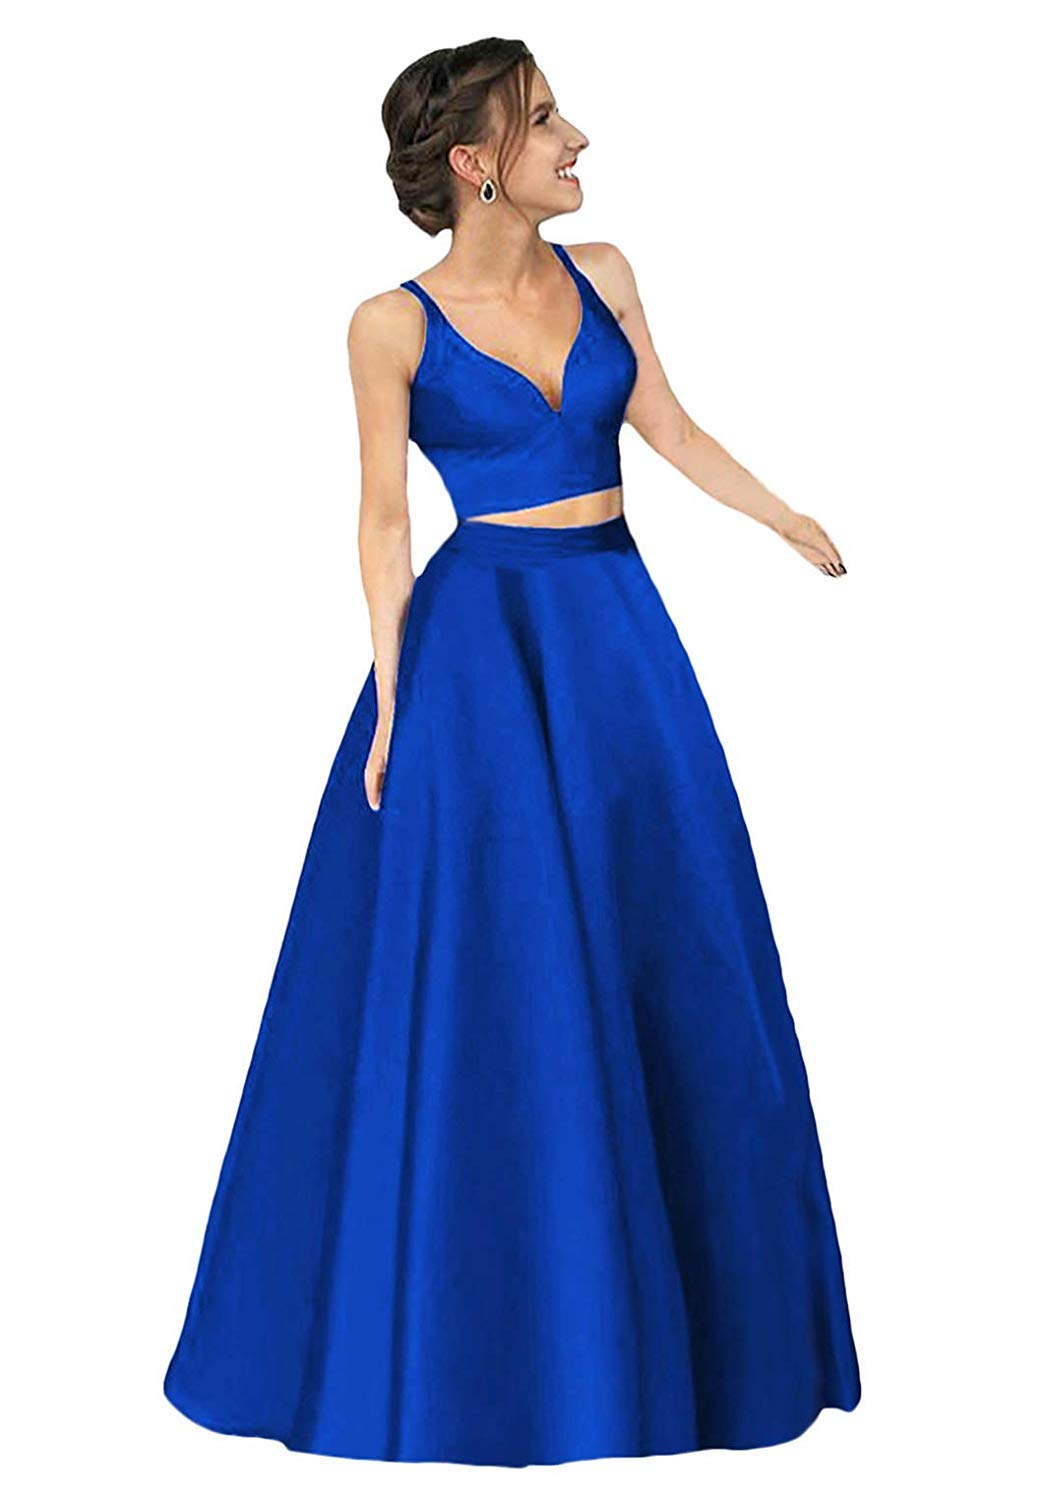 HONGFUYU V Neck Two Piece Long Satin Formal Prom Dresses with Invisible Pockets Graduate Party Dresses